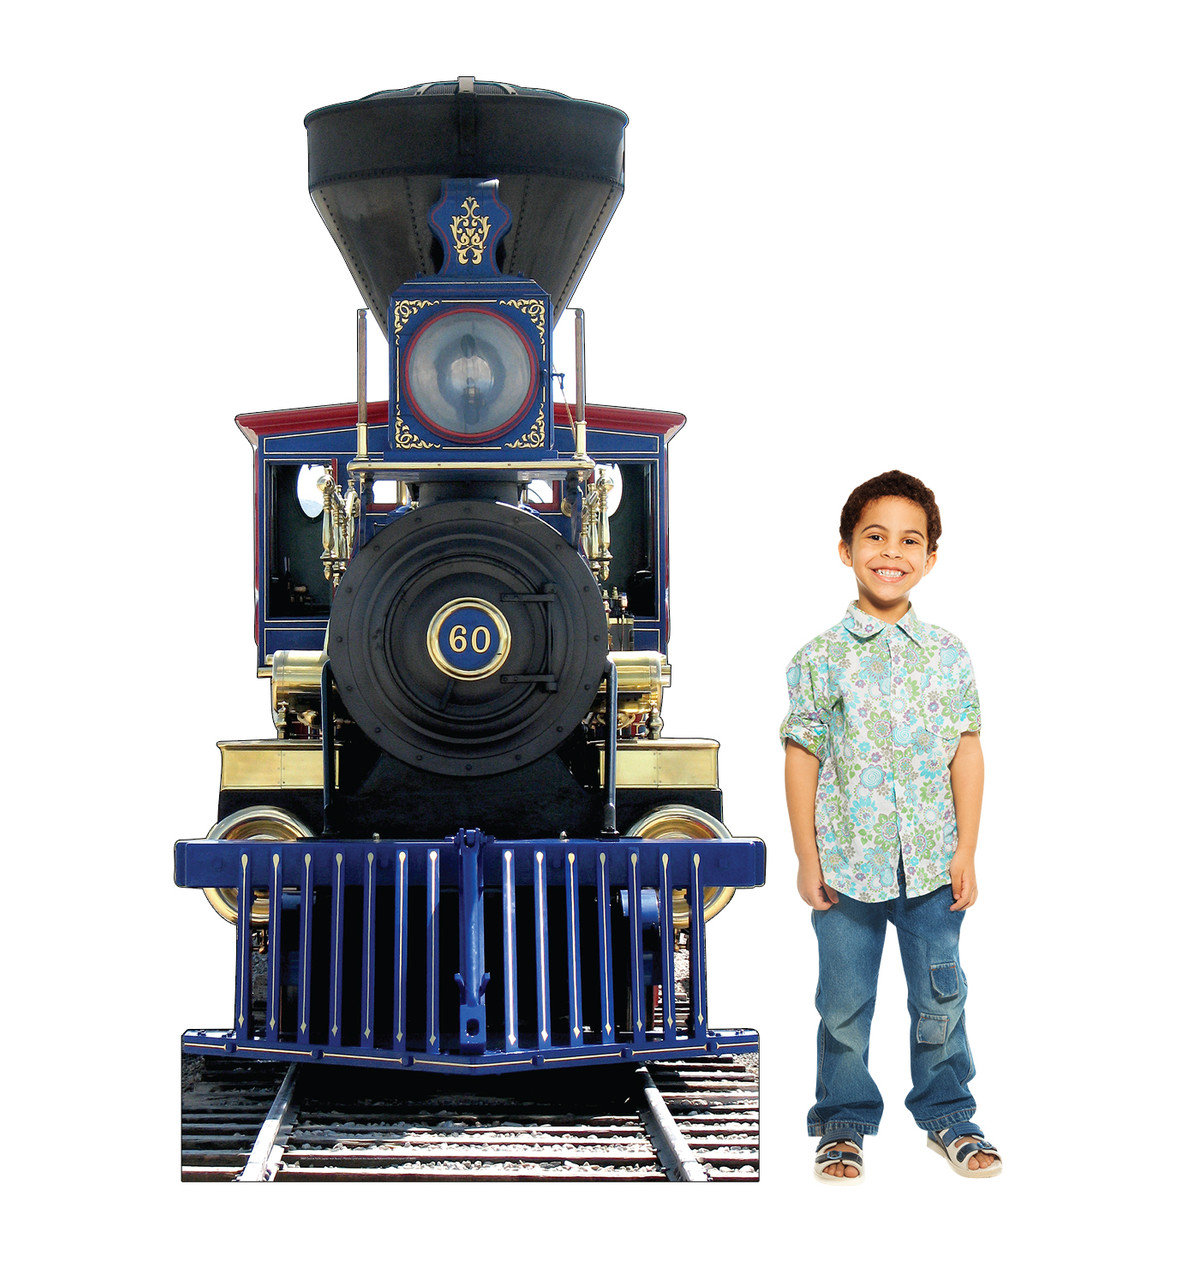 Life-size cardboard standee of CP60 Jupiter Train with model.